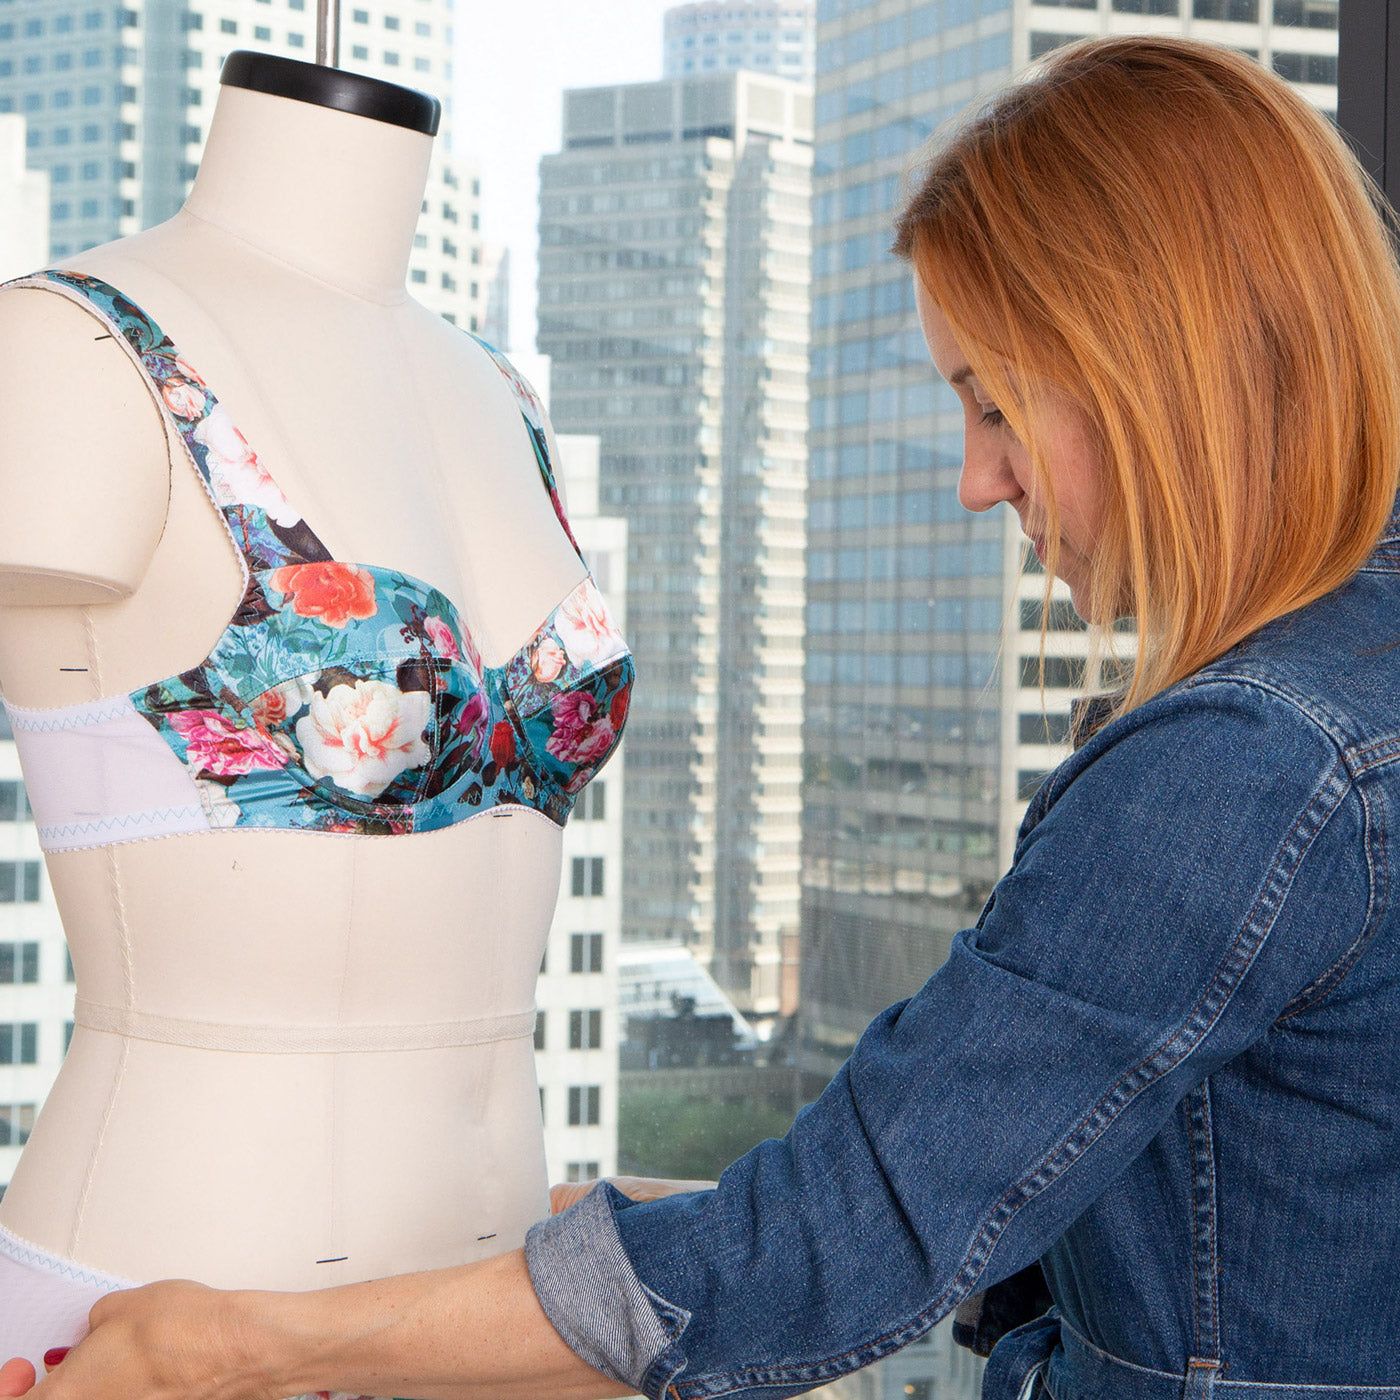 Side view of a Norma Loehr looking down and measuring a dressform, the dressform wears a bright, floral underwire bra. The background is a window onto a downtown cityscape.